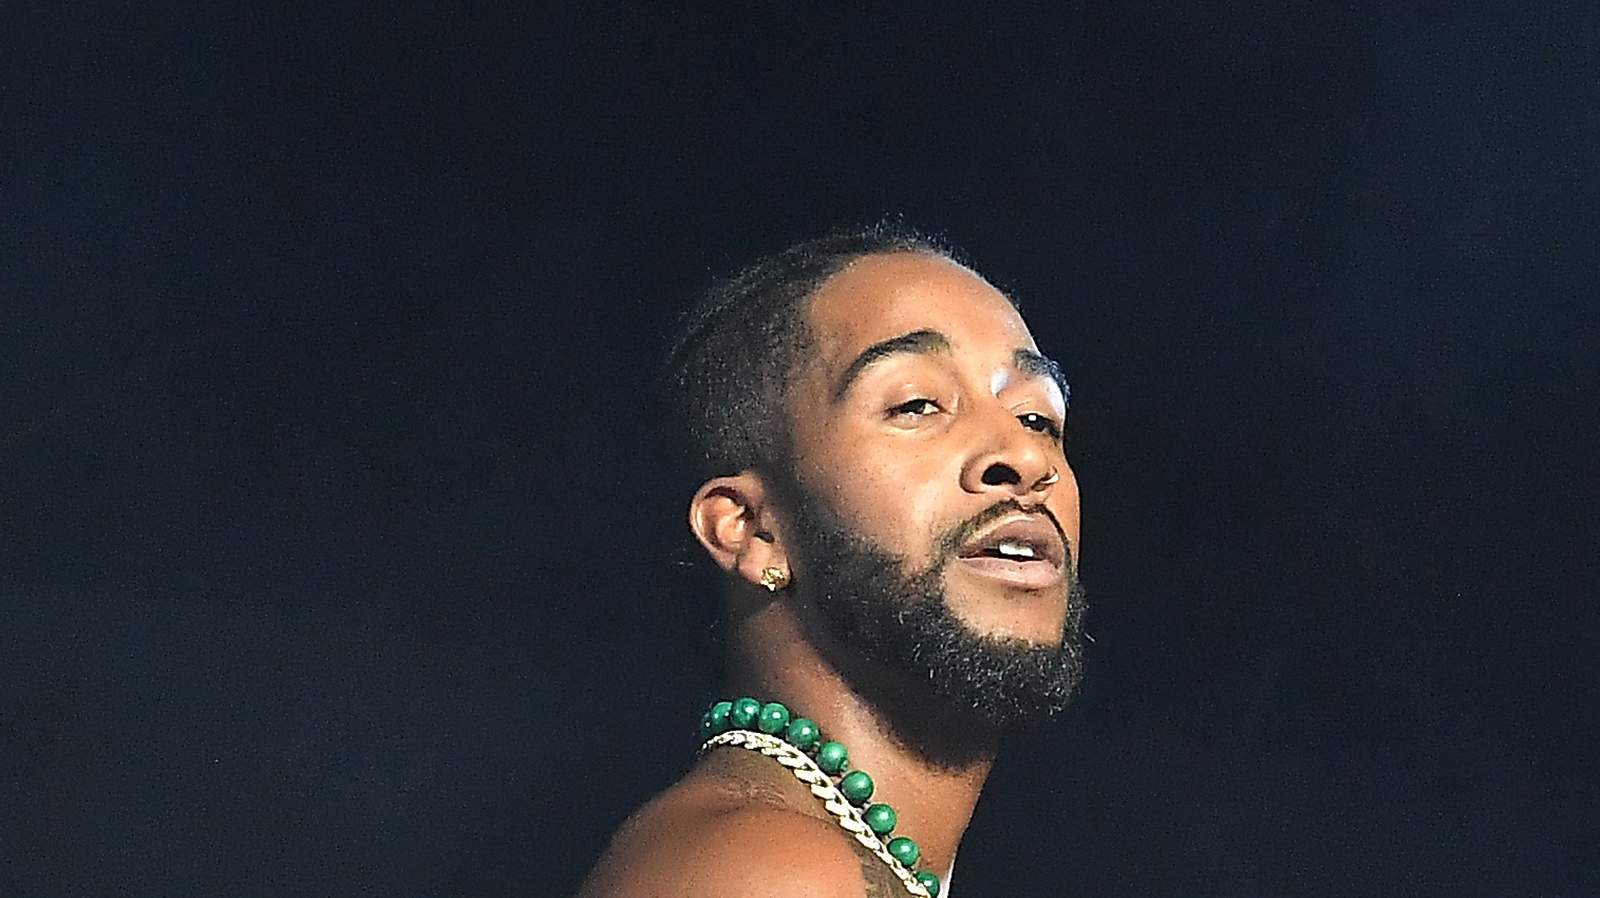 The Millennium Tour - Omarion, Bow Wow, Ashanti (Rescheduled from 4/26/2020, 8/9/2020)